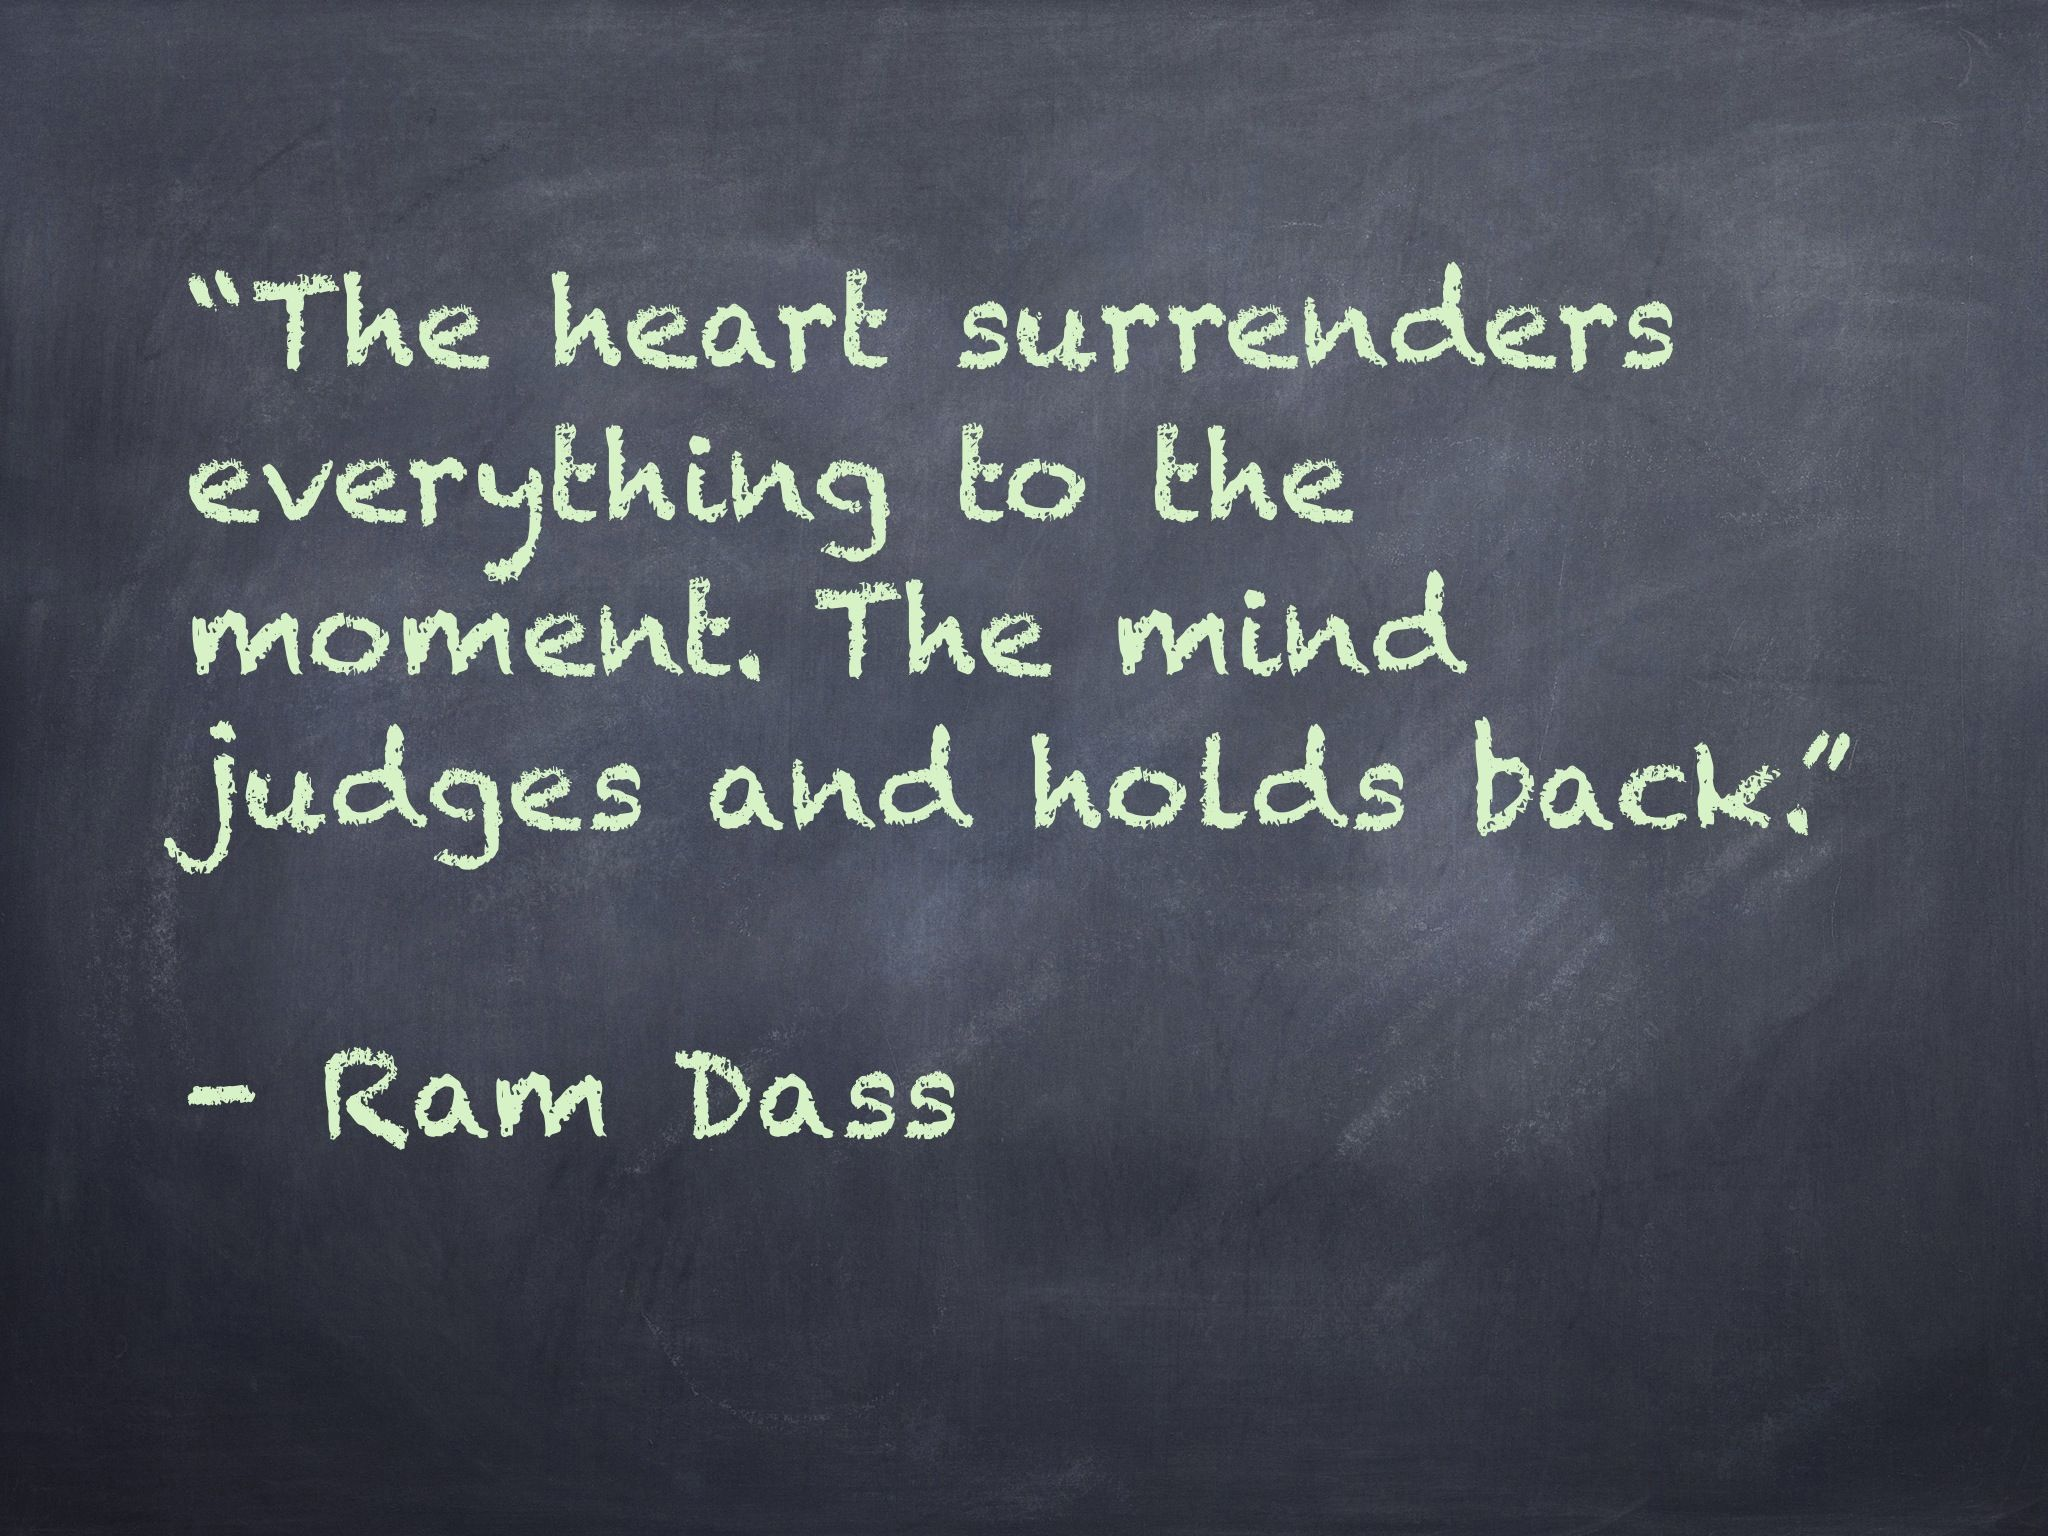 Ram Dass Quotes Ram Dass Quotes  Share  Beautyart  Pinterest  Wisdom Truths